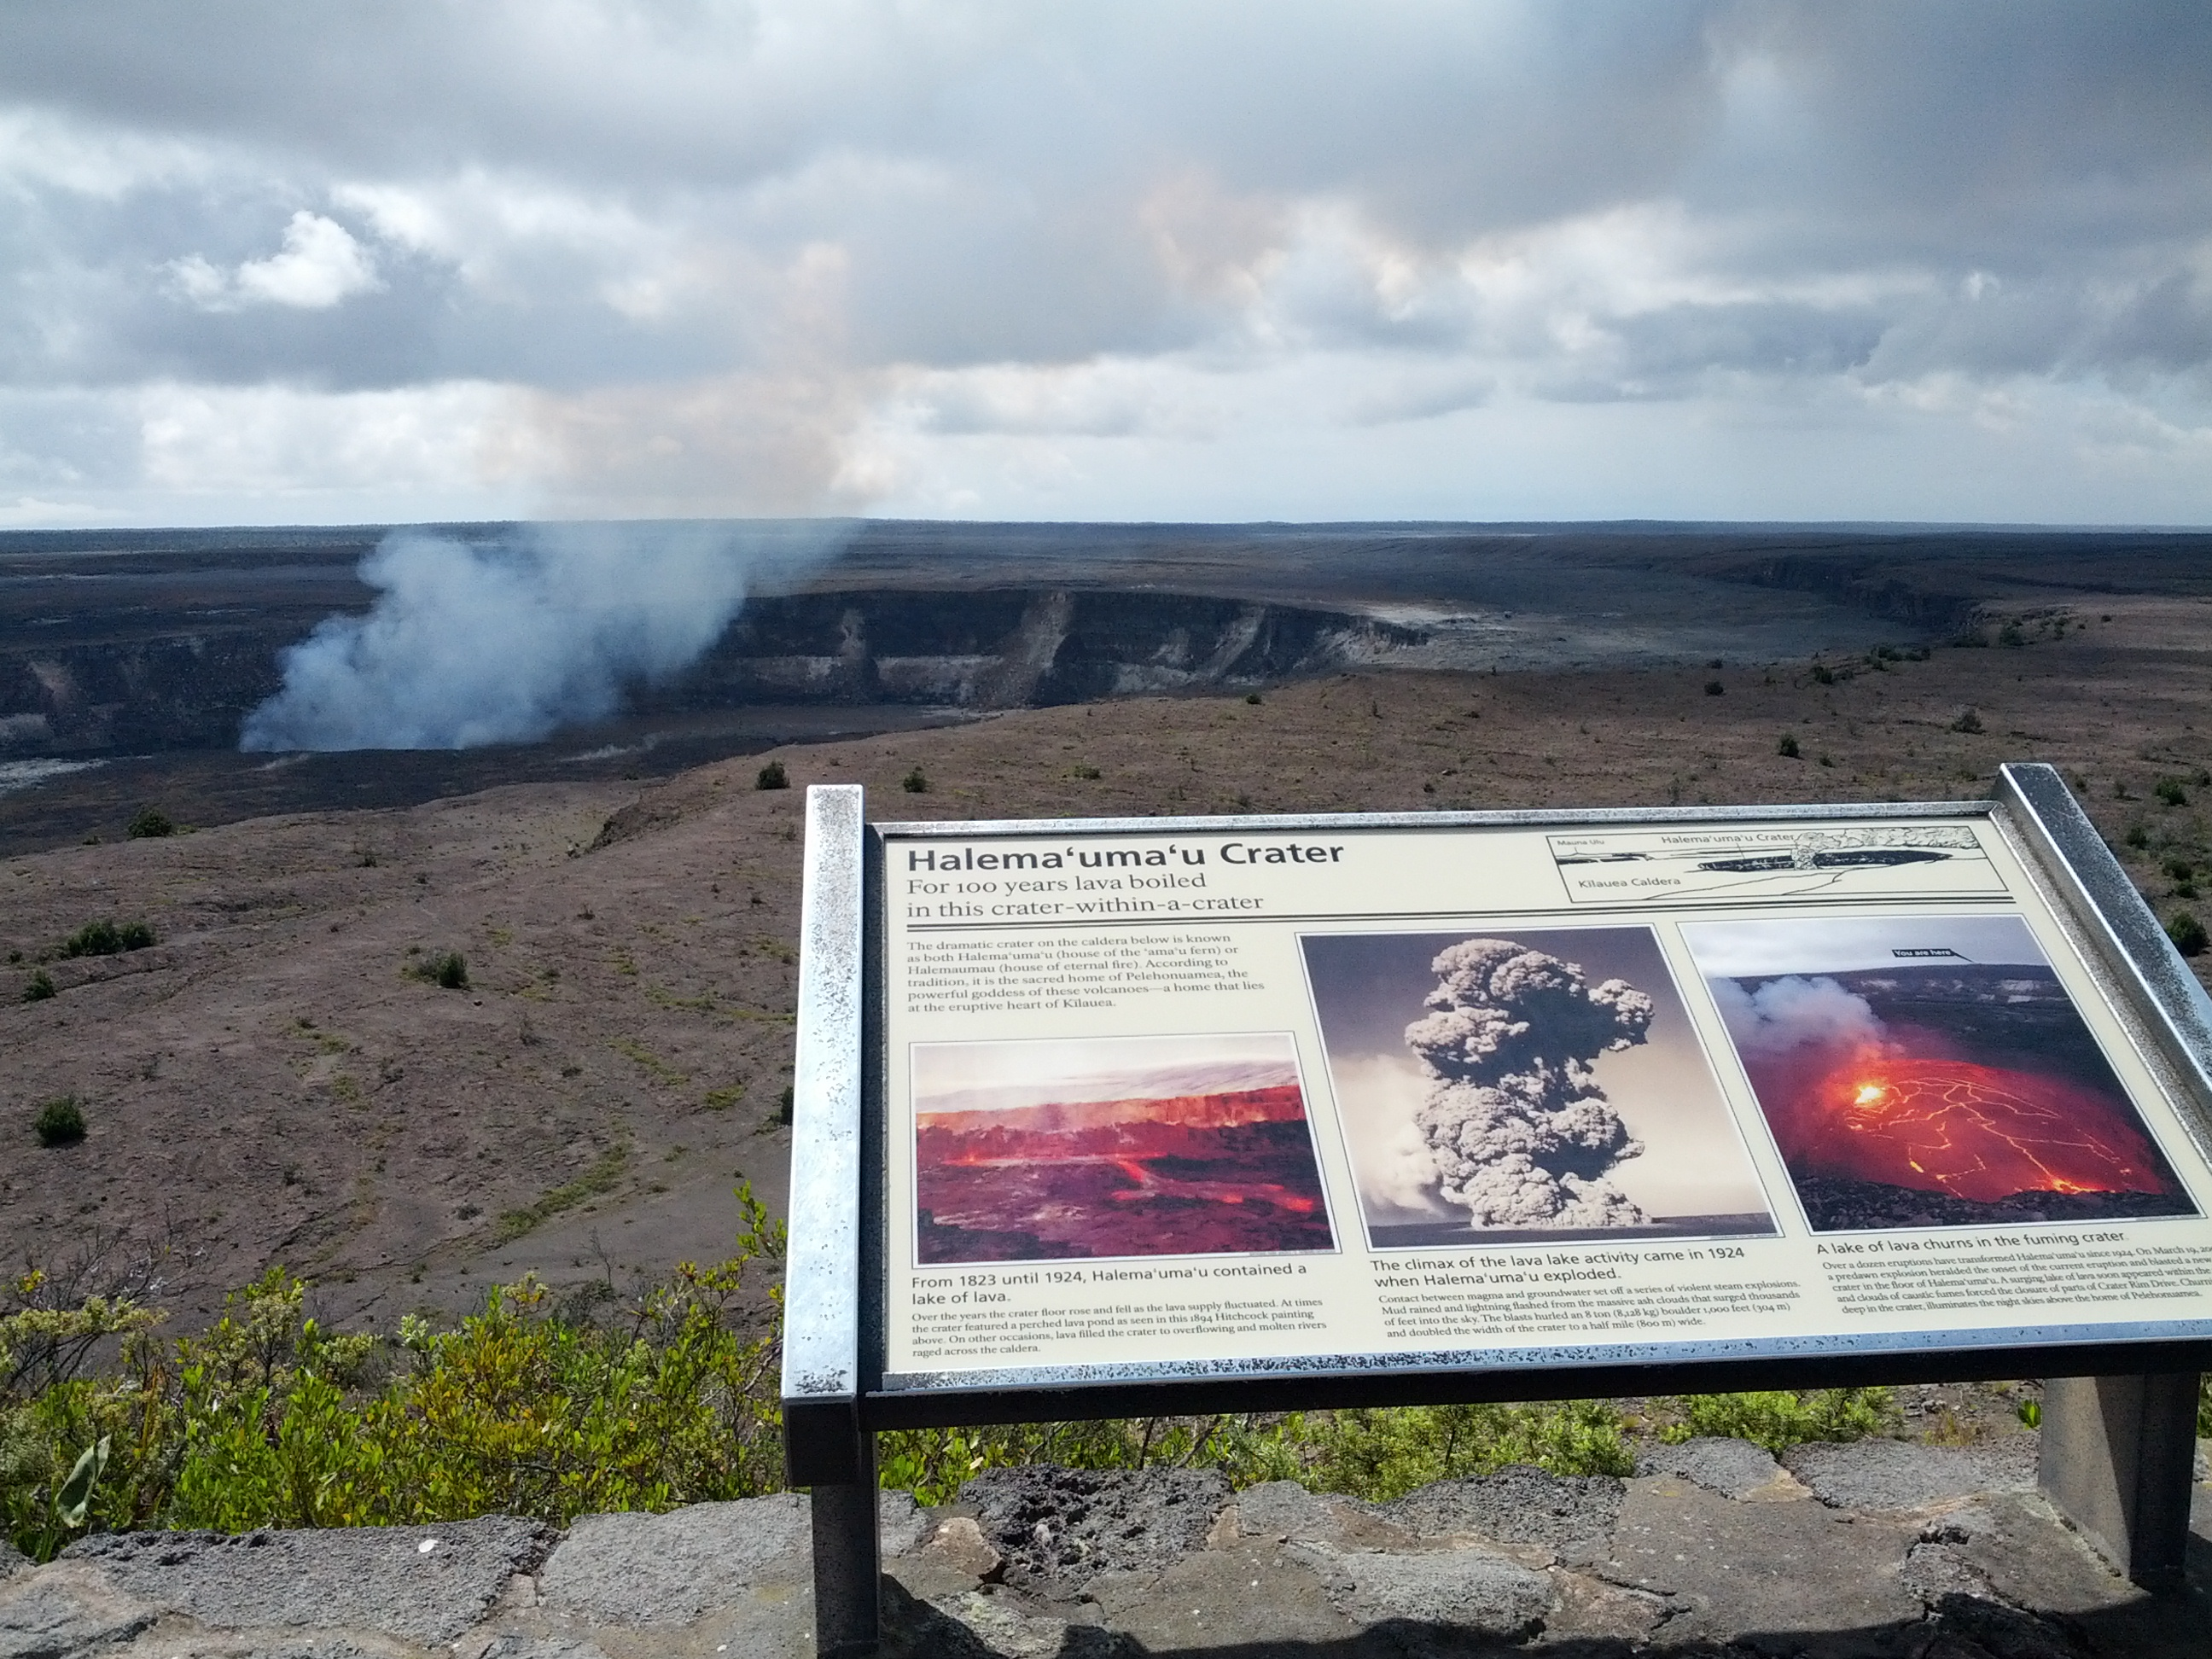 Halemaumau crater and Kilauea volcano actively erupting.